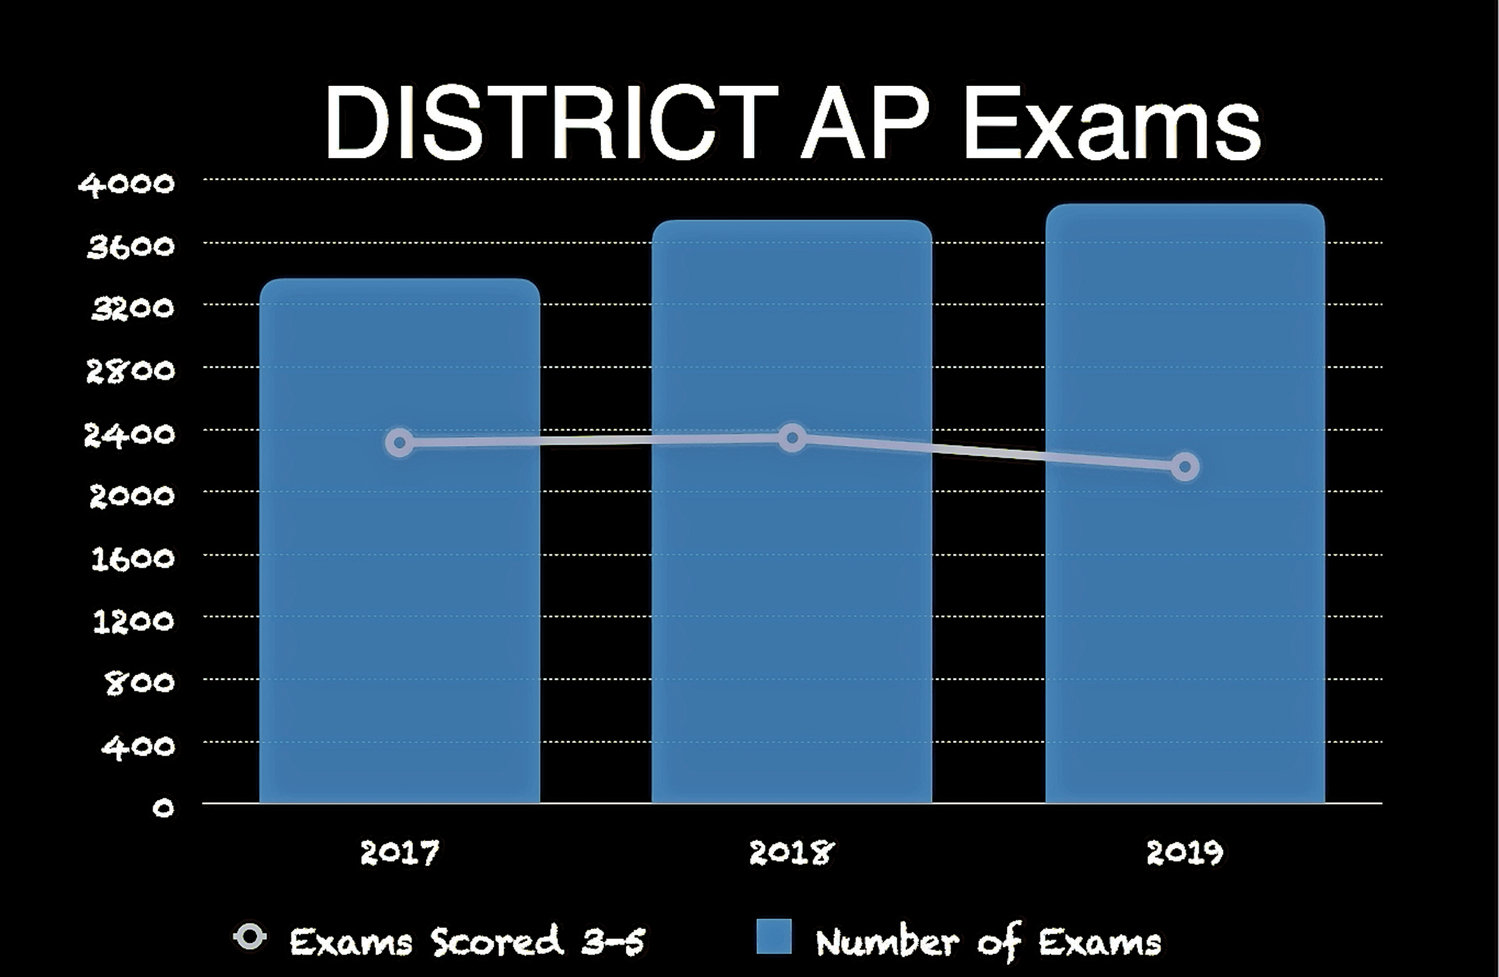 The Sewanhaka Central High School District administered more Advanced Placement tests last year, although the mastery rate declined.